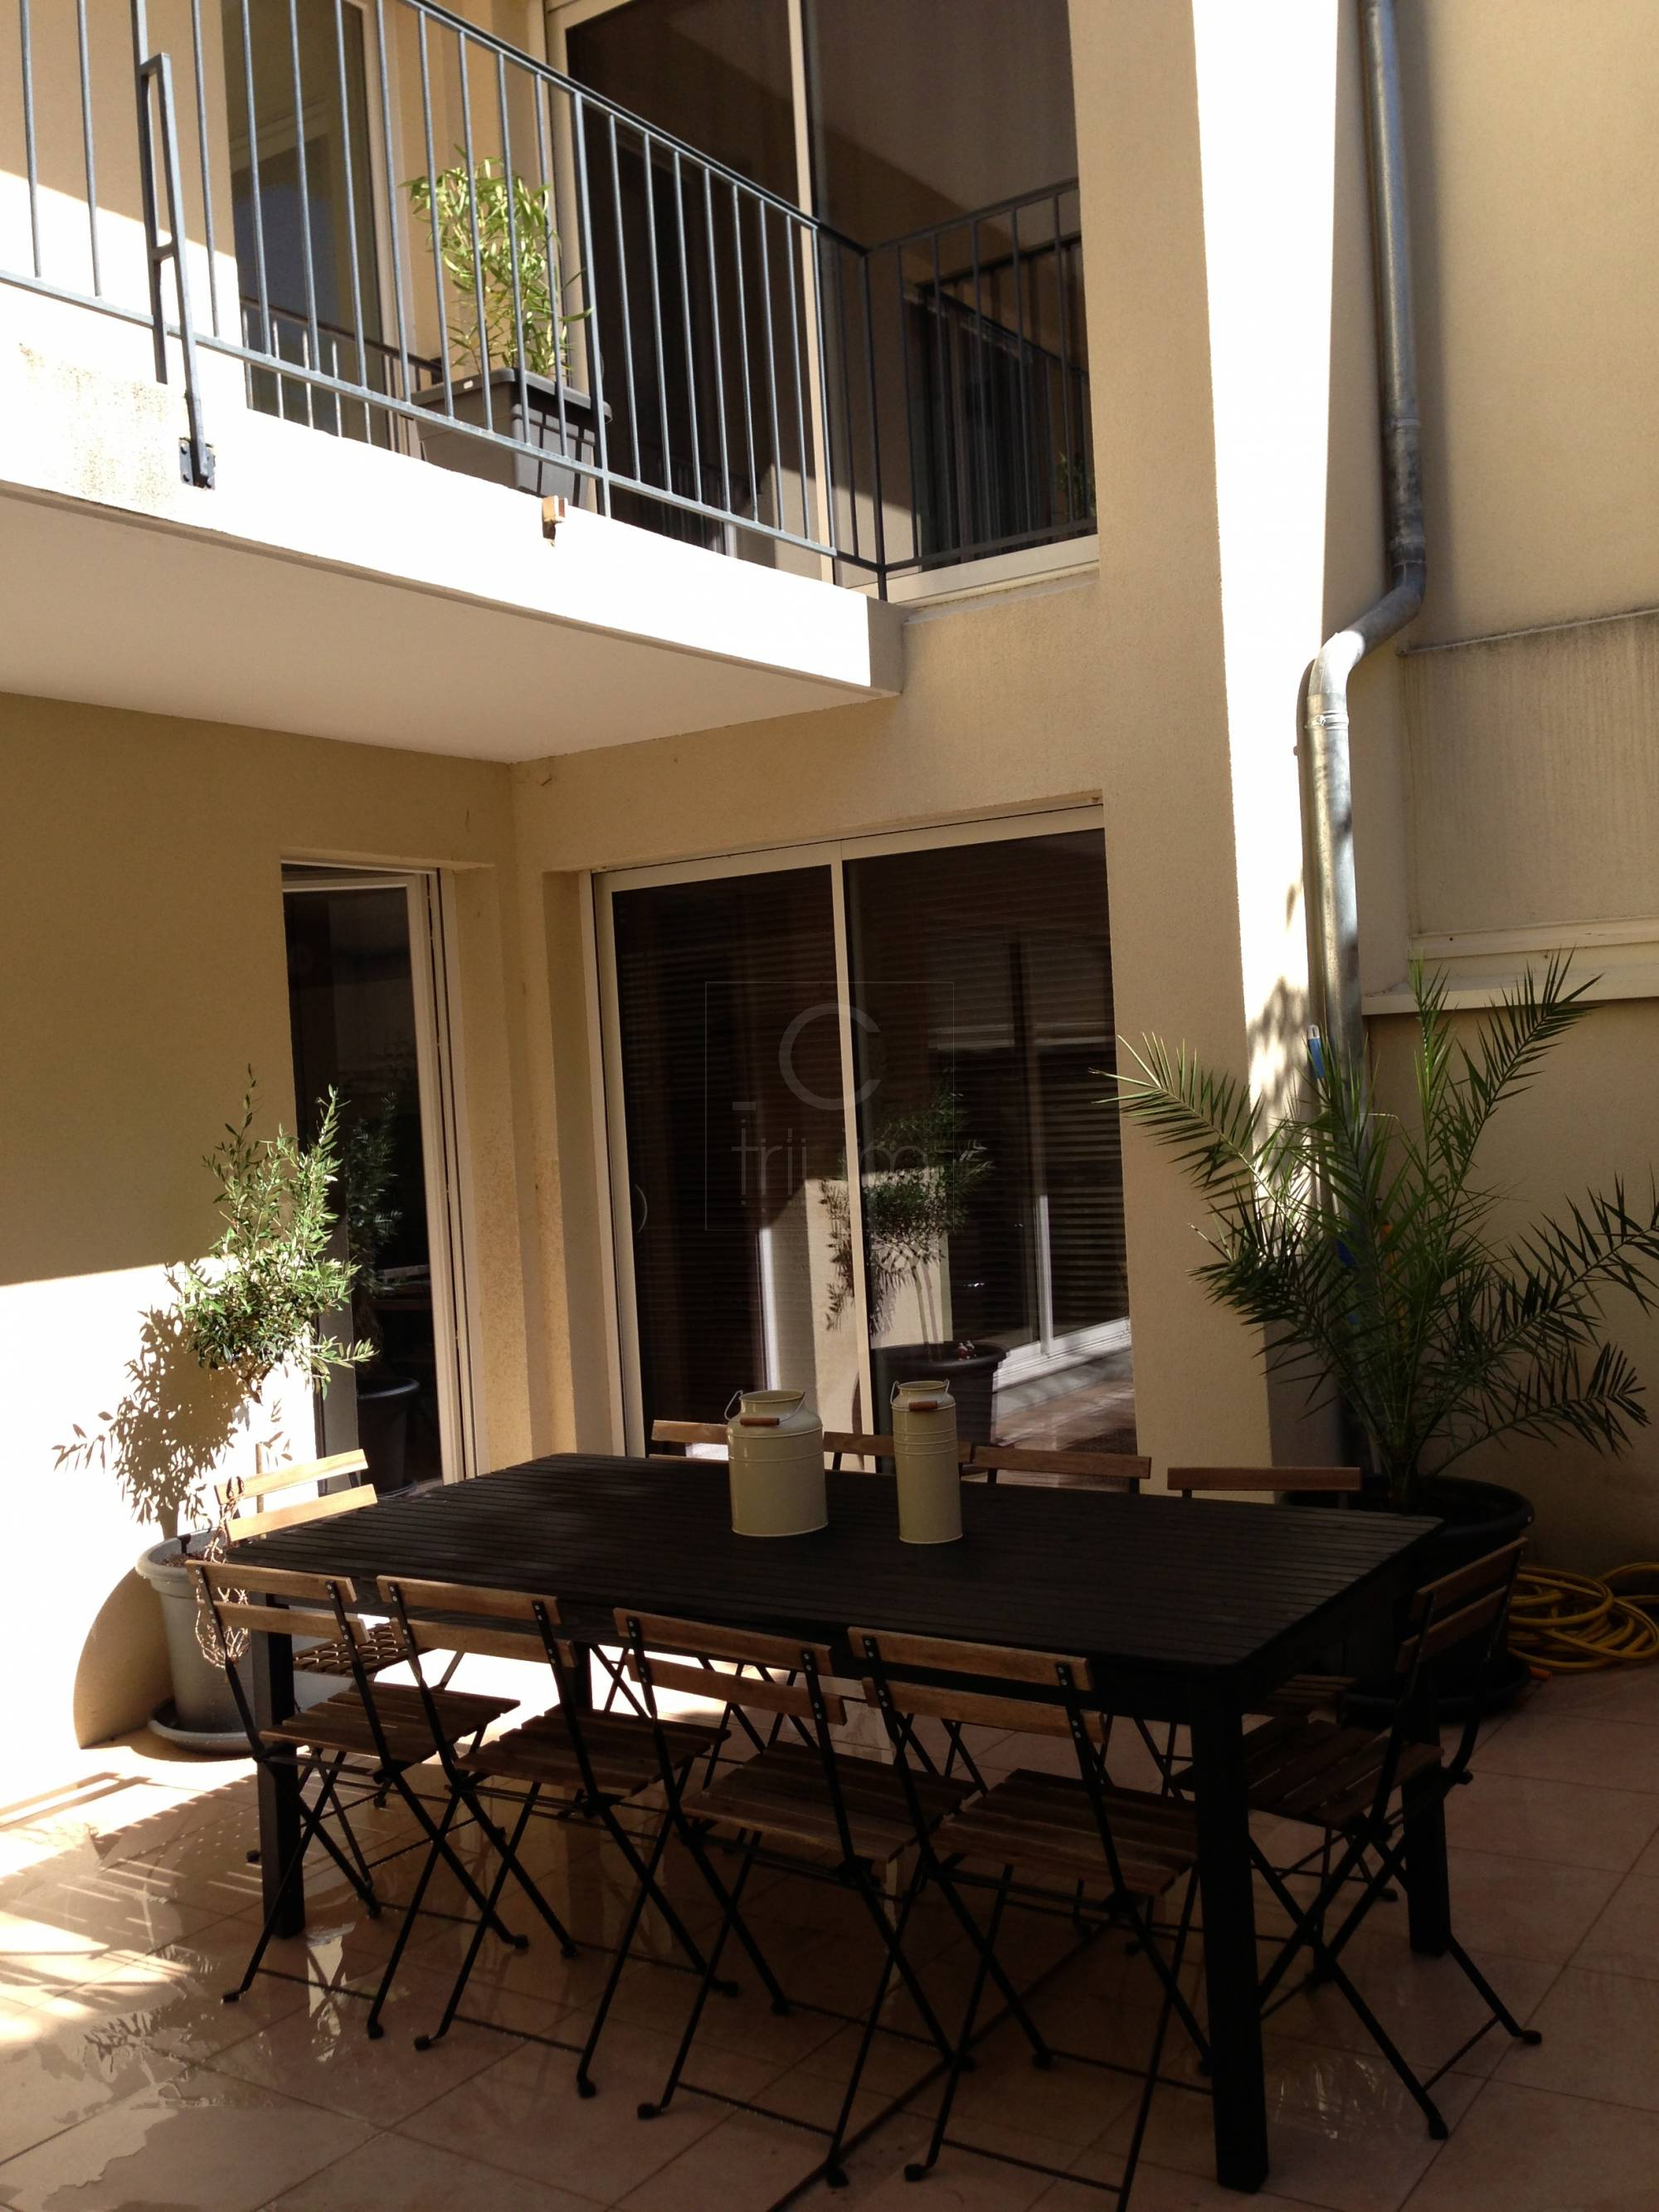 Location Appartement T4 F4 Marseille 7eme Bompard Meubl